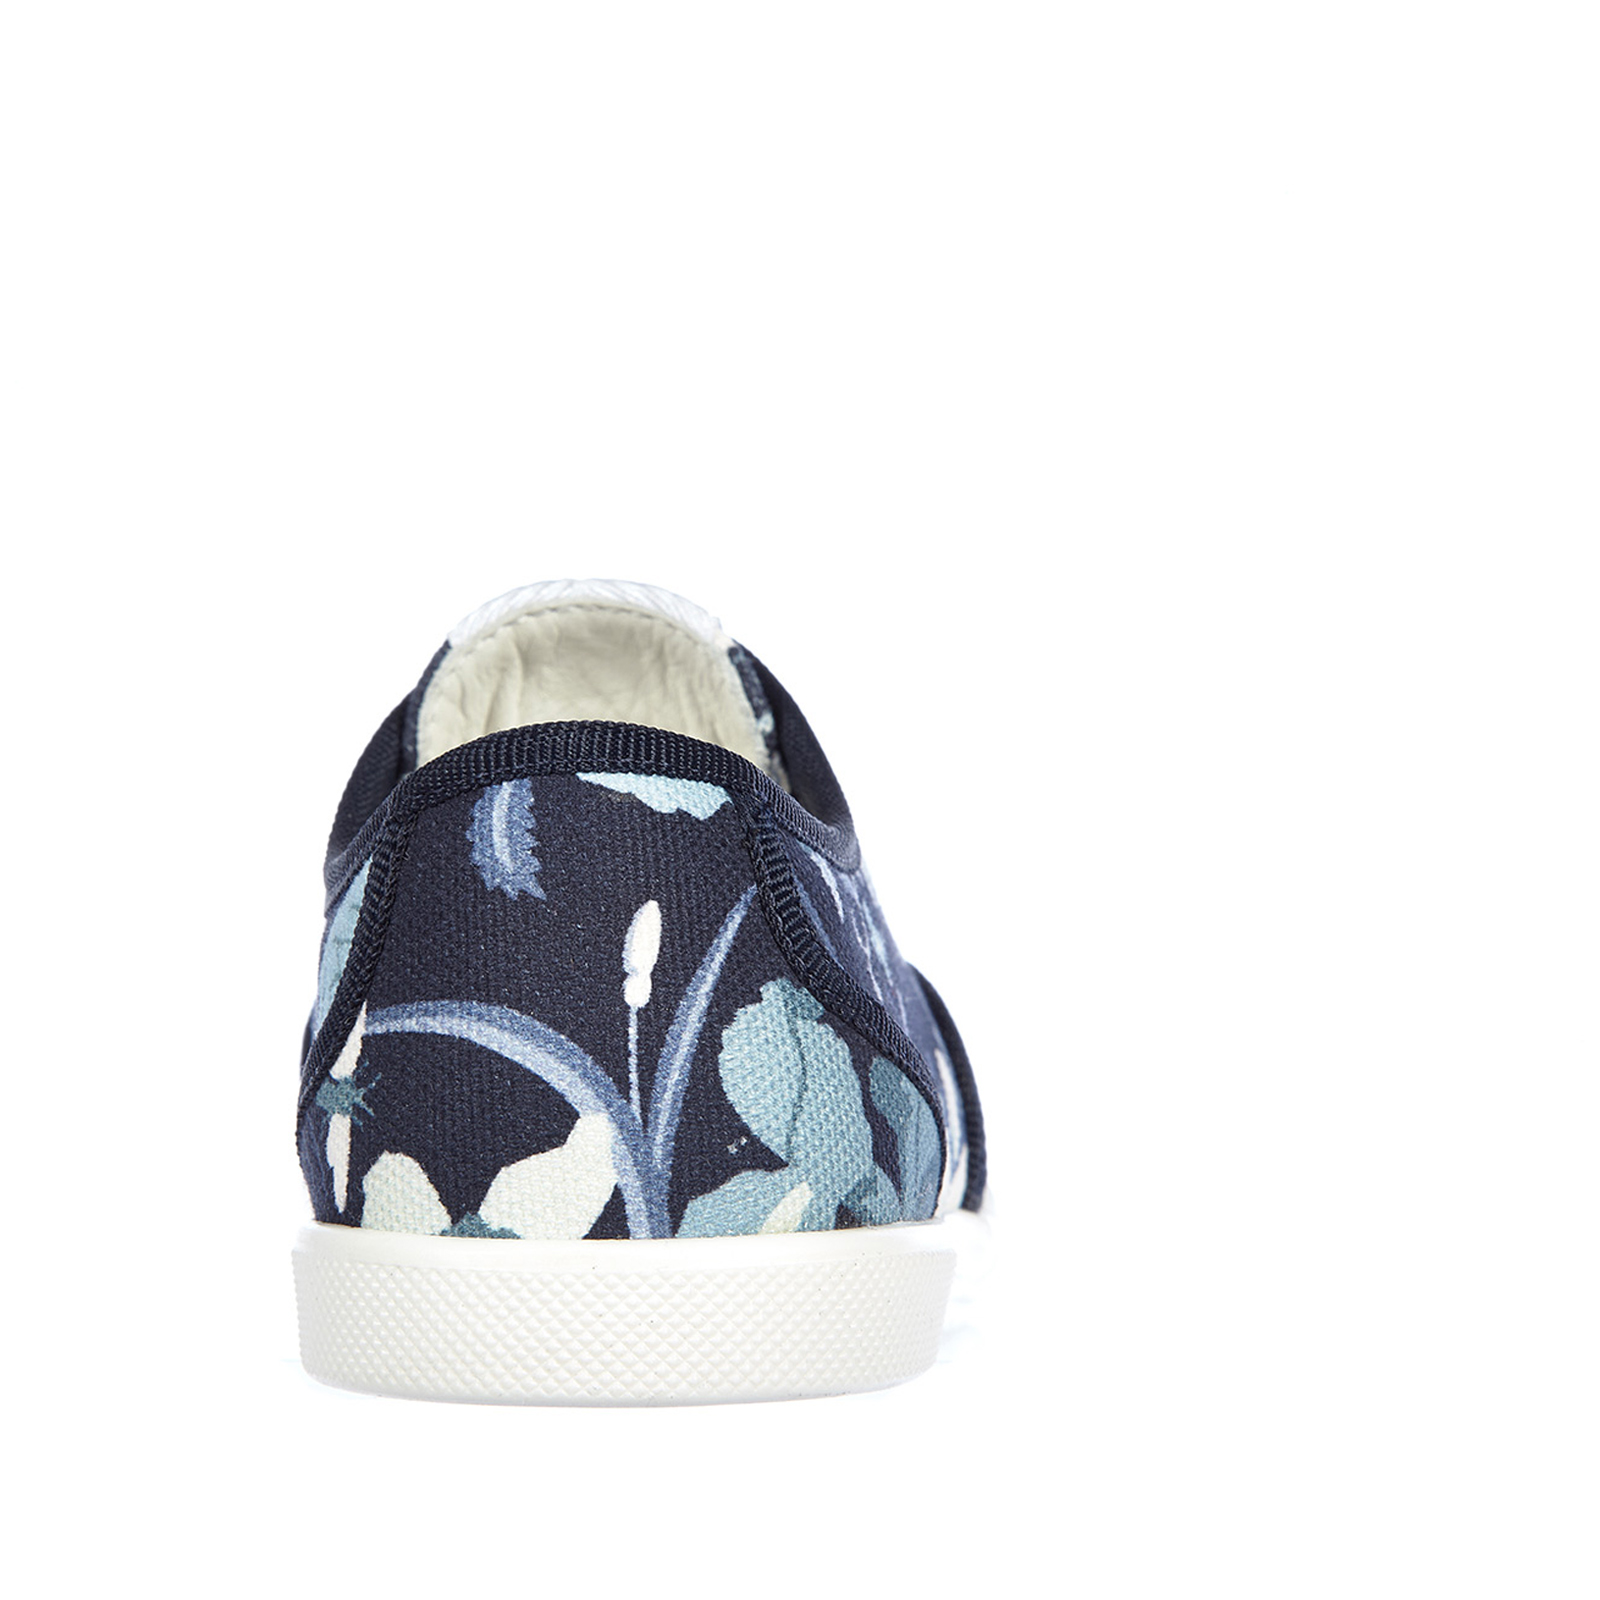 Chaussures baskets sneakers filles  sepang flora